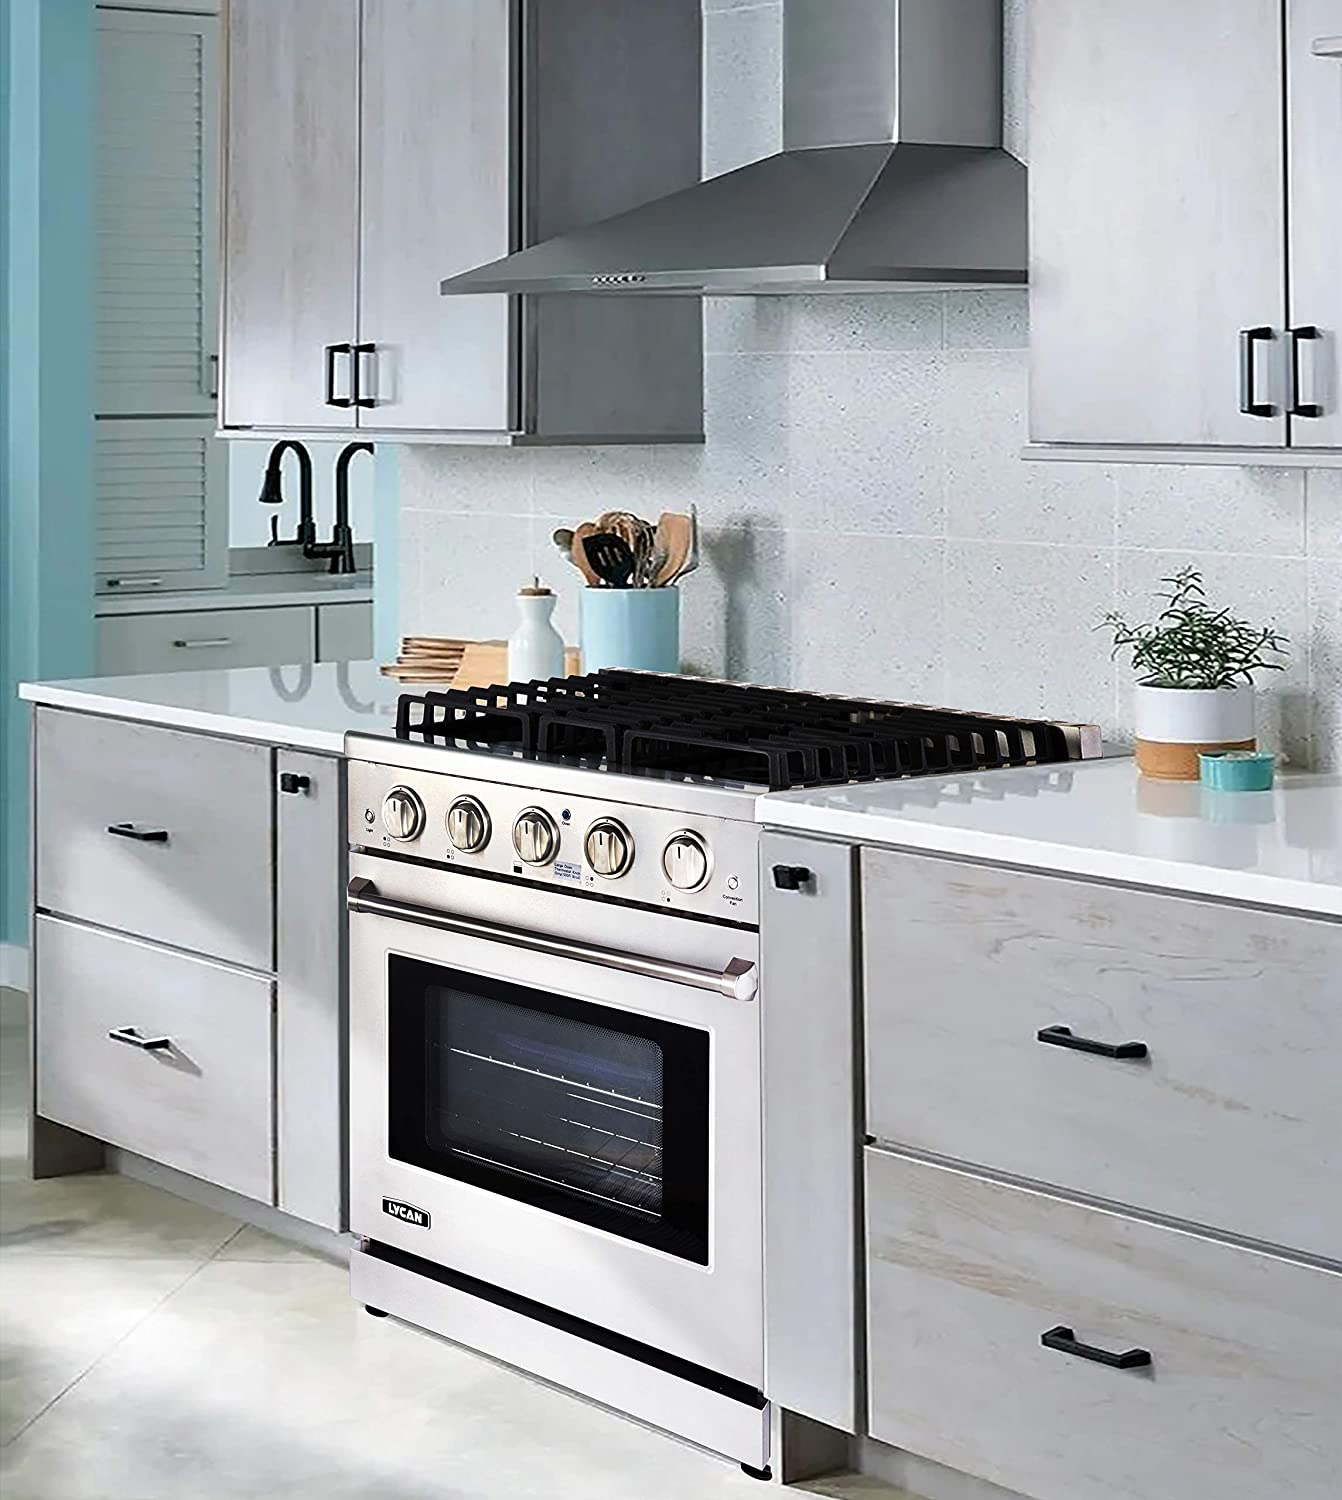 Heavy Duty Stainless Steel Stove with 4 Burners